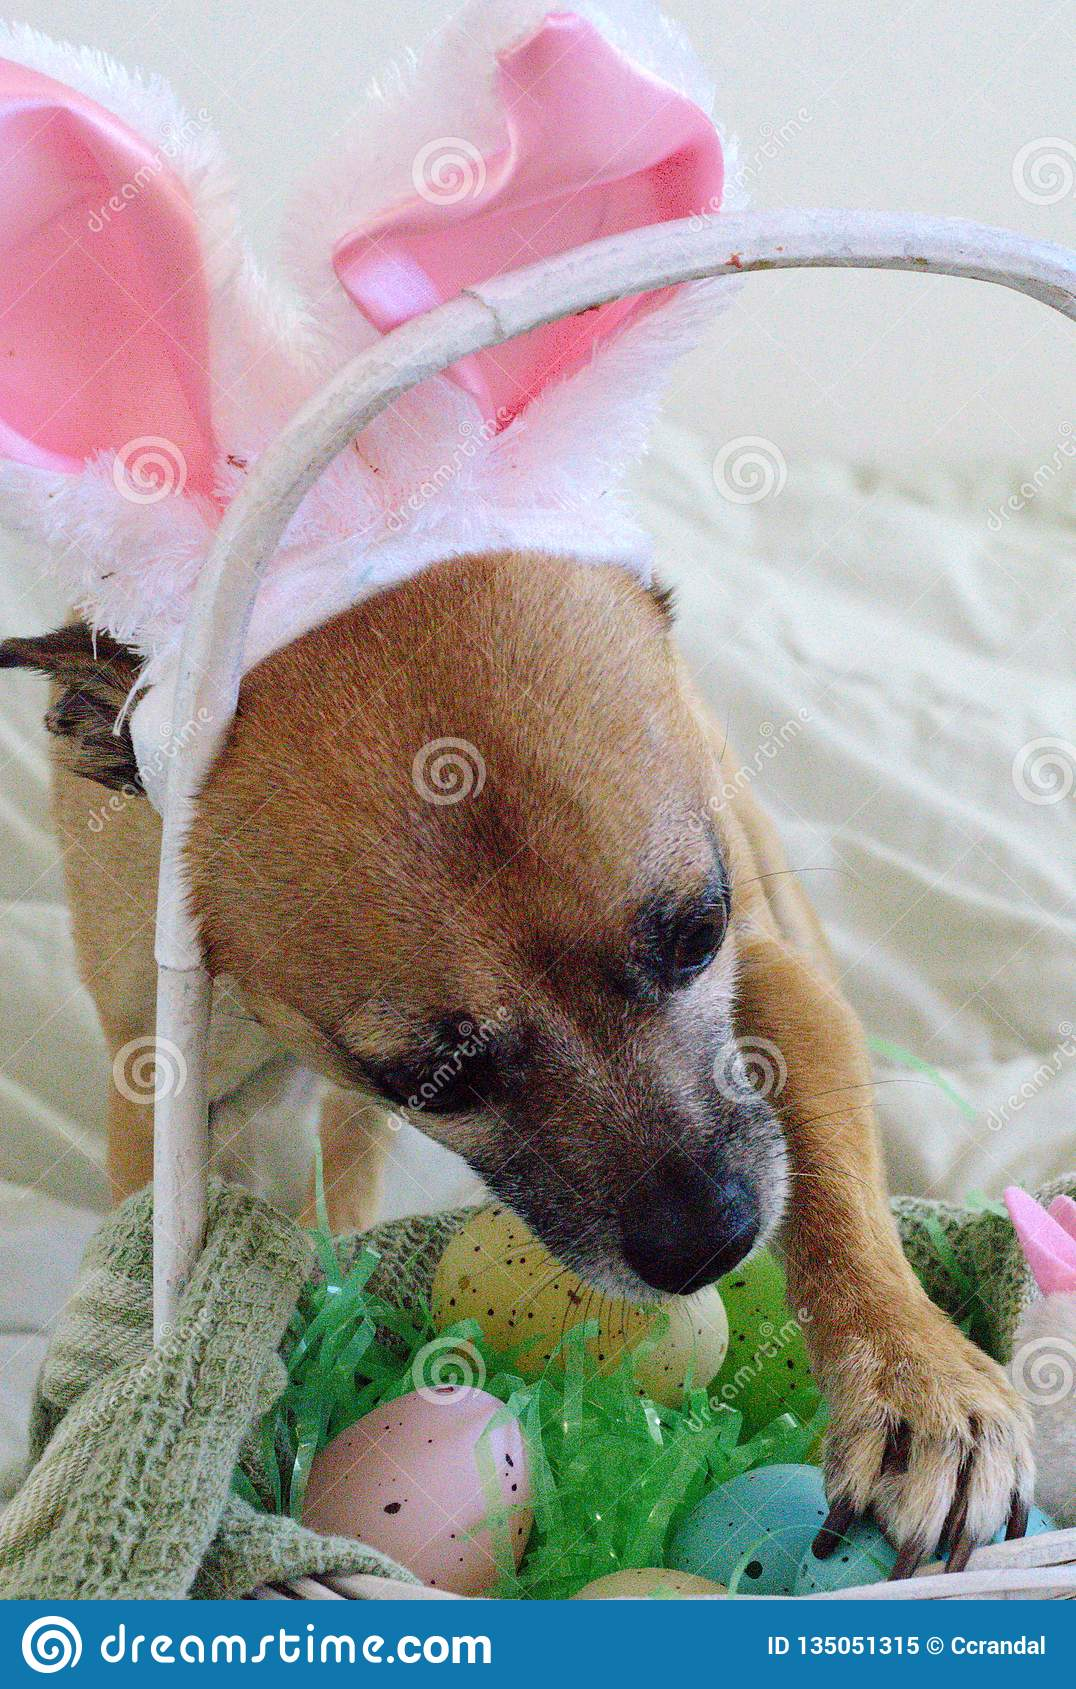 409 Happy Easter Dog Bunny